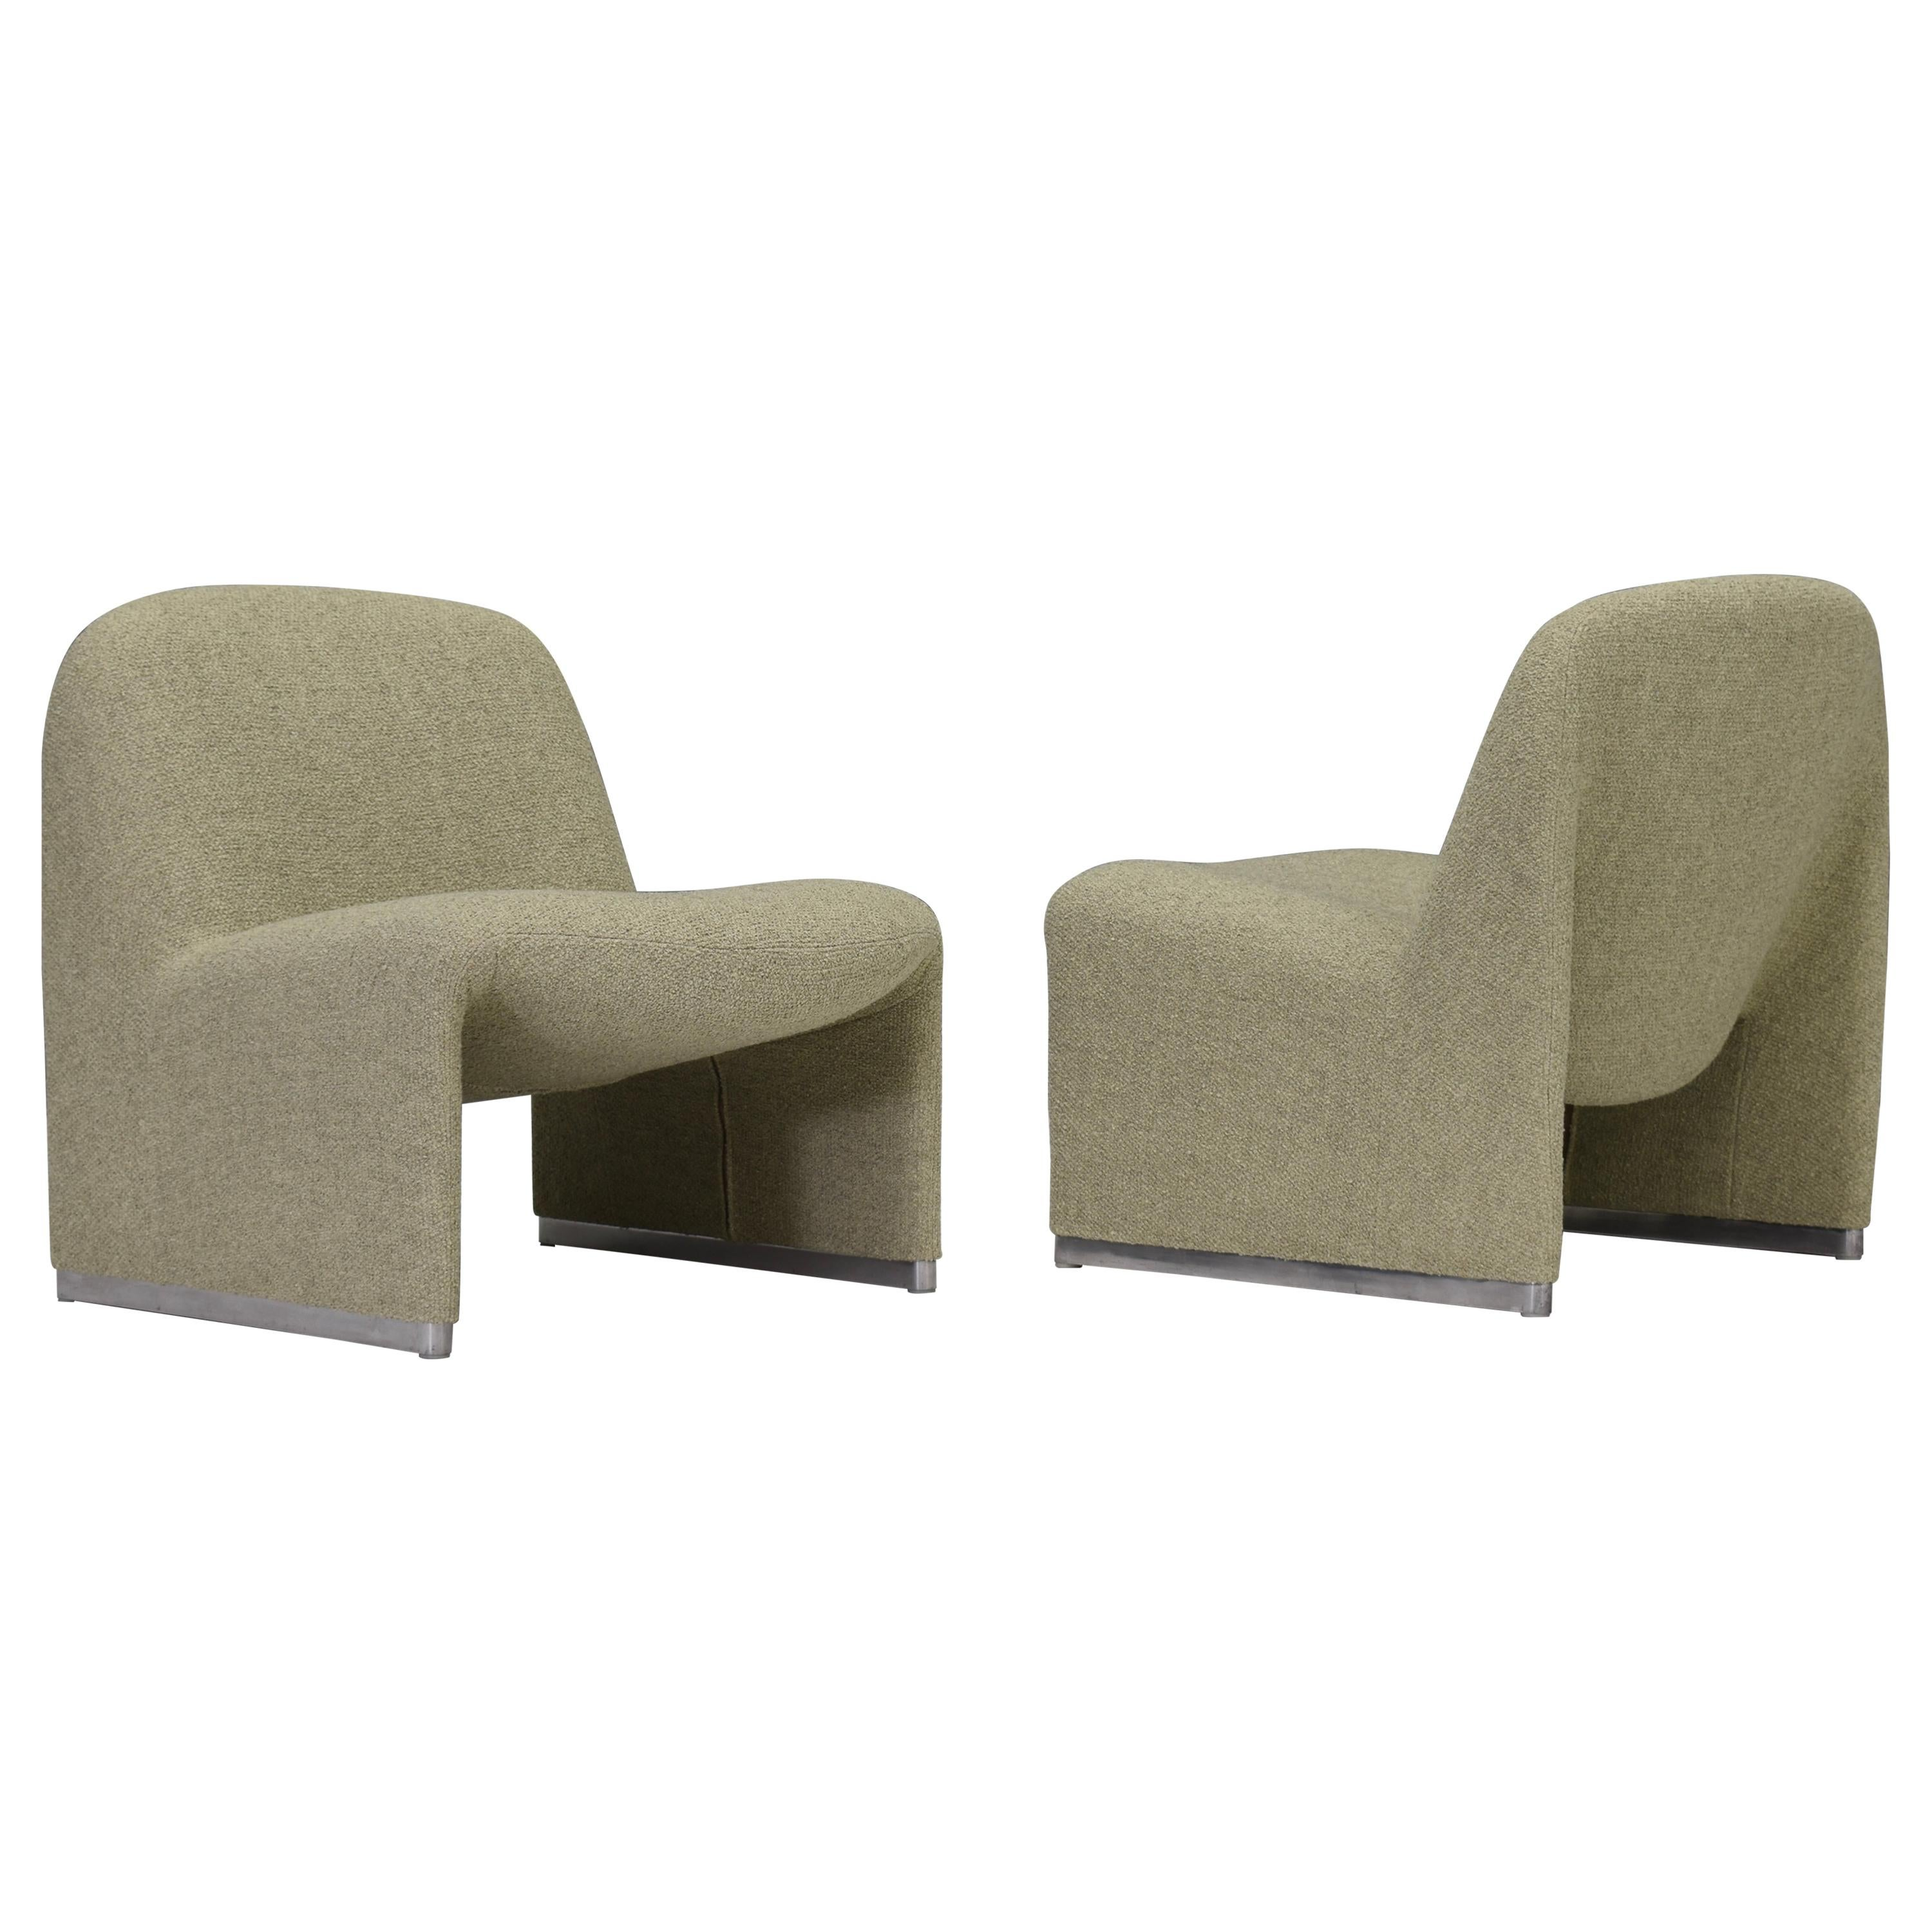 Alky Chairs by Giancarlo Pirettie for Artifort and Castelli, Italy, circa 1970